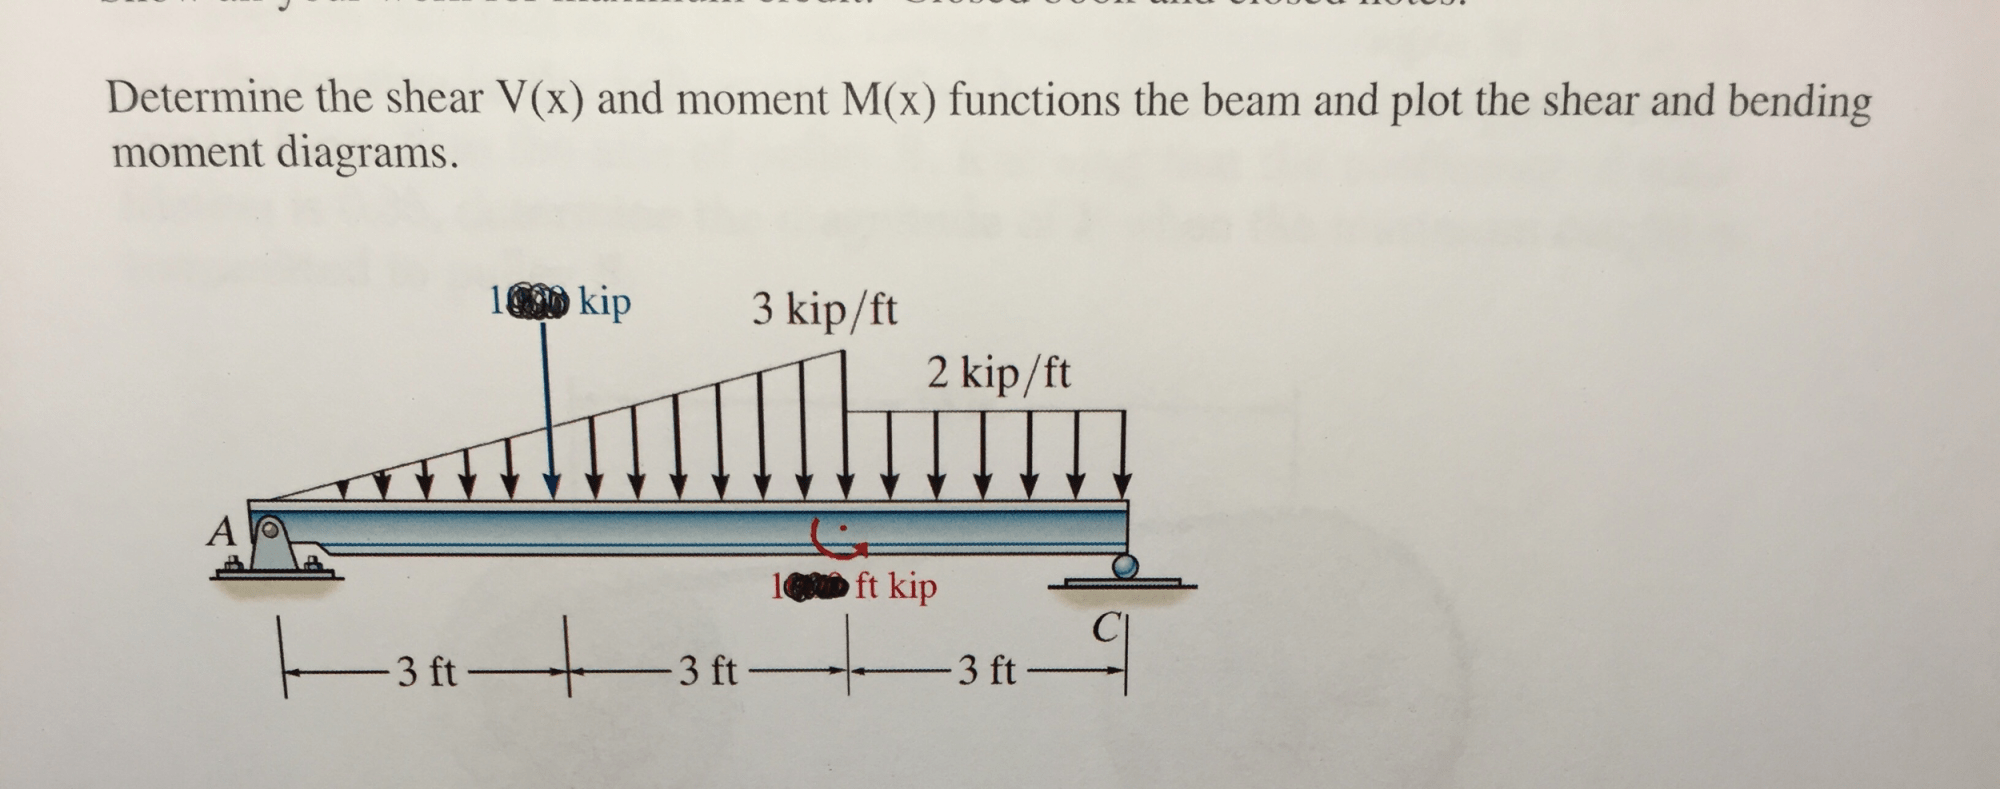 hight resolution of determine the shear v x and moment m x functions